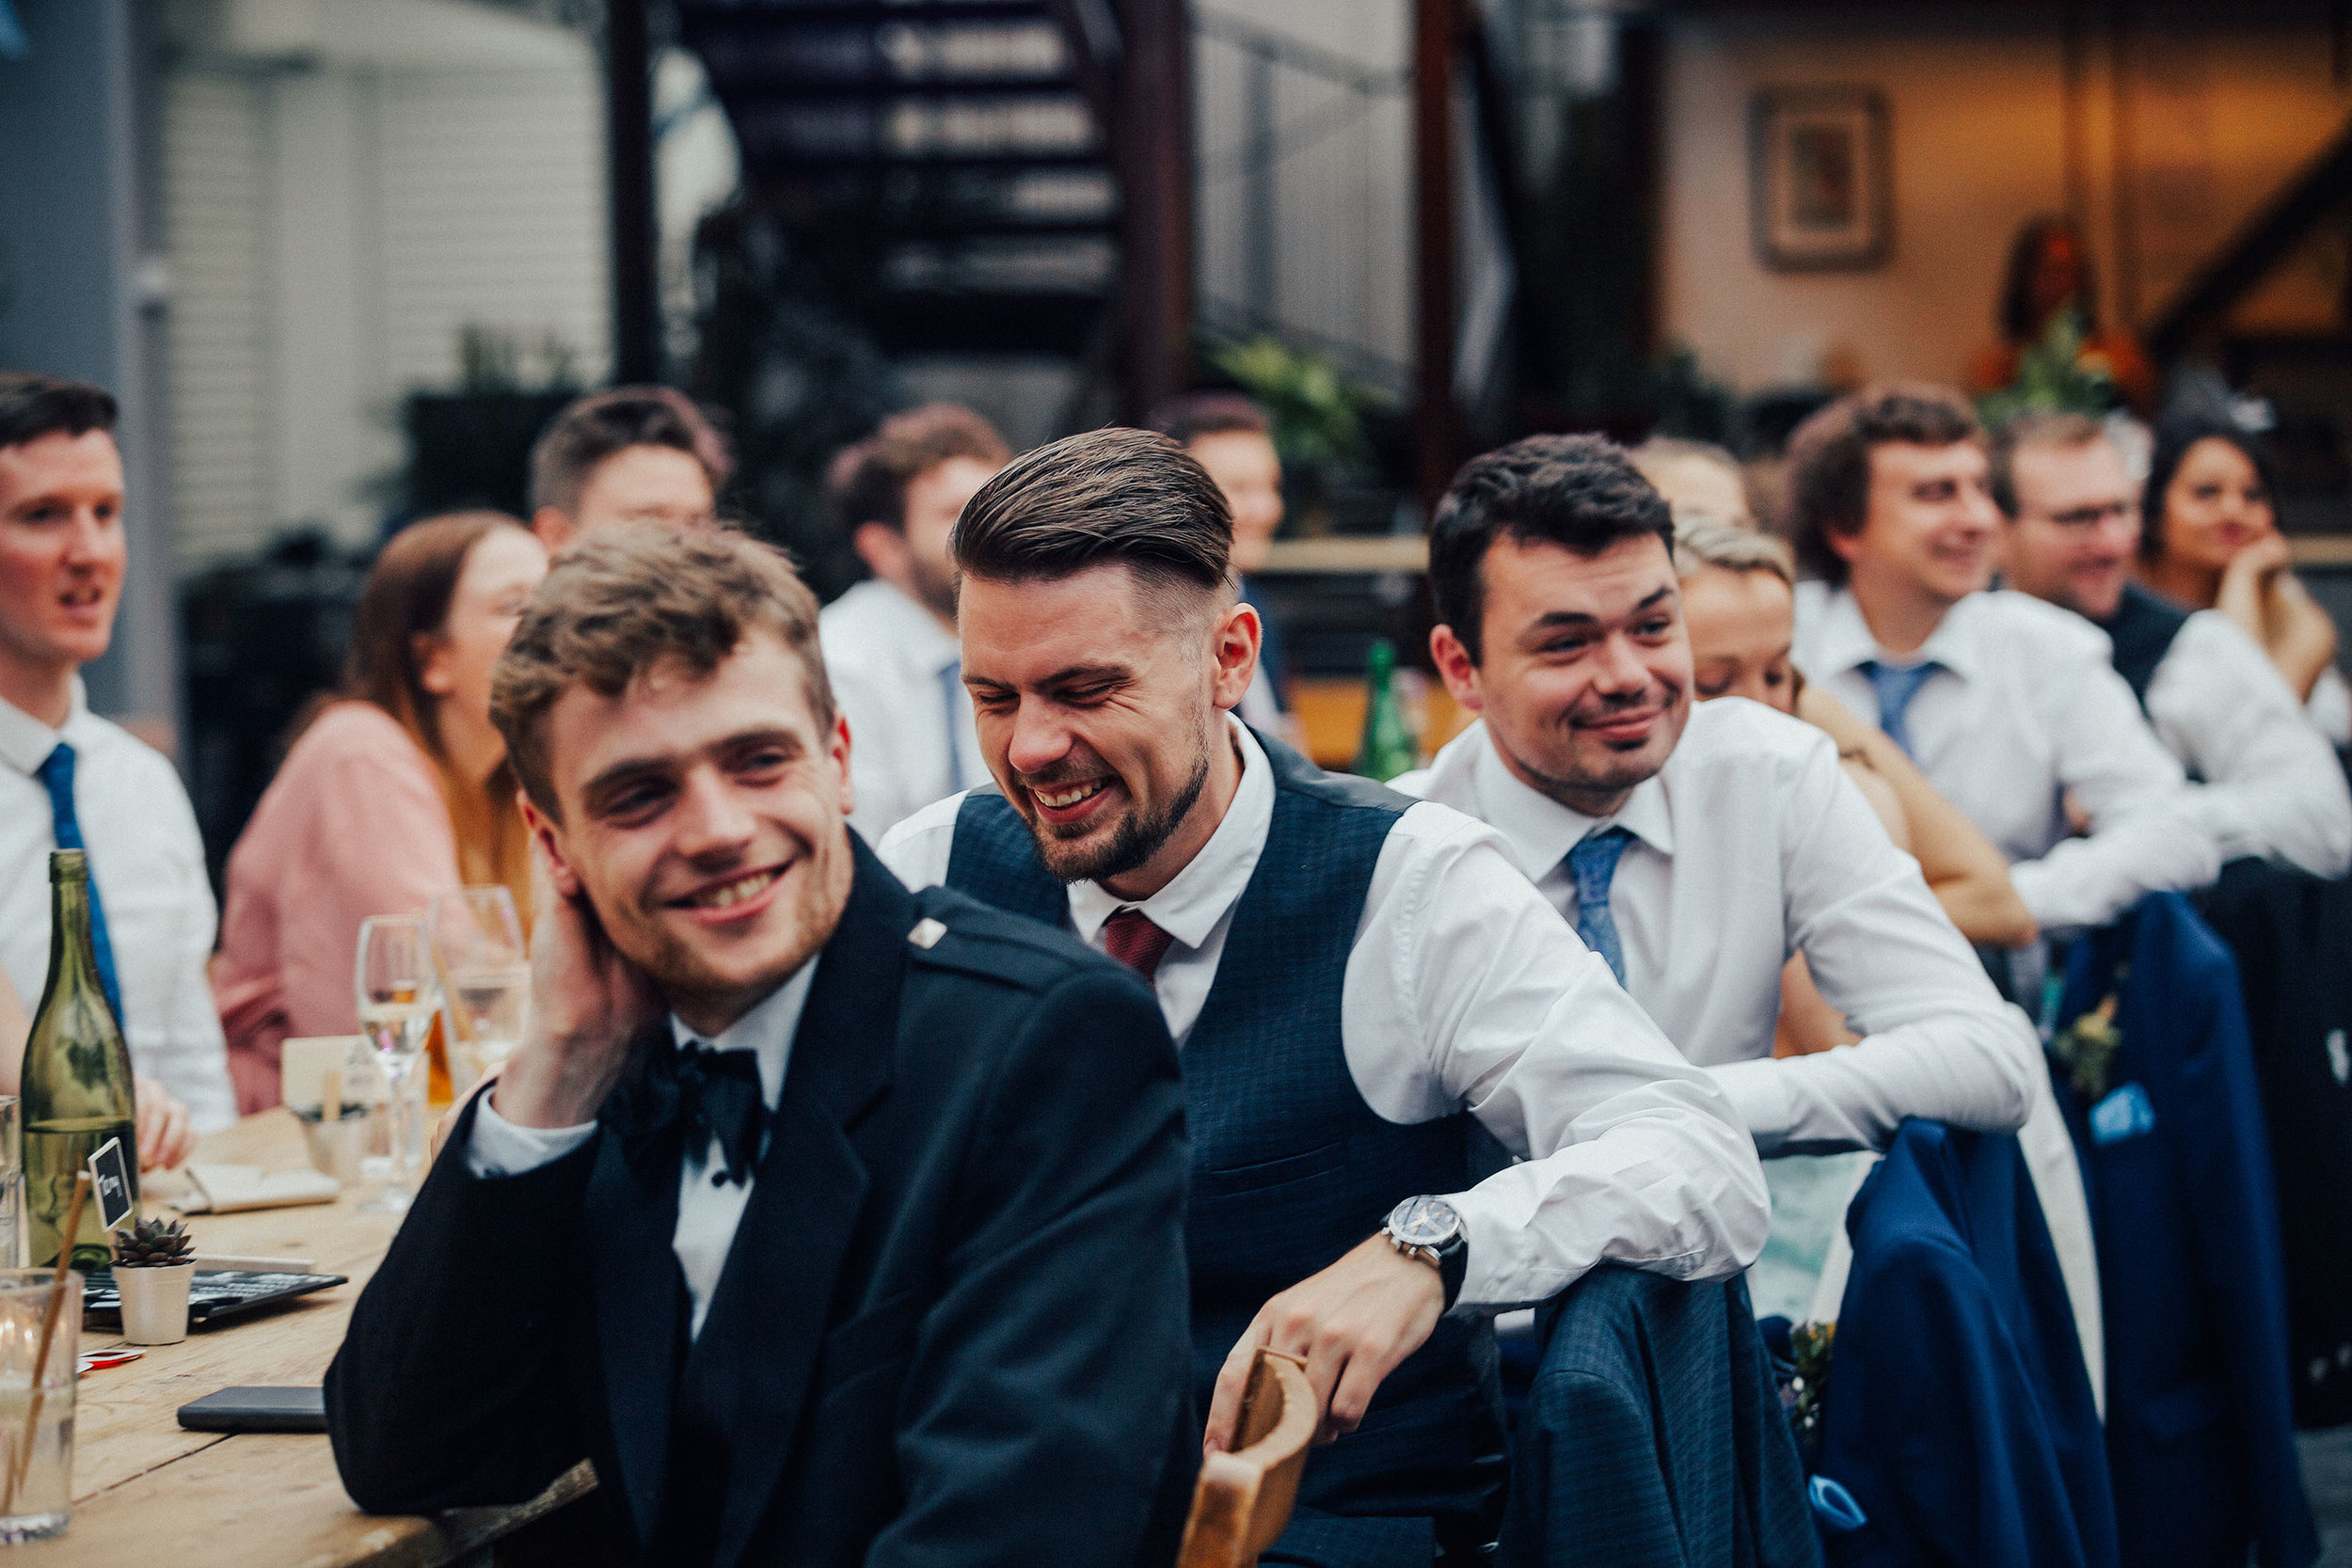 PJ_PHILLIPS_PHOTOGRAPHY_2018_SCOTLAND_WEDDING_PHOTOOGRAPHER_284.jpg